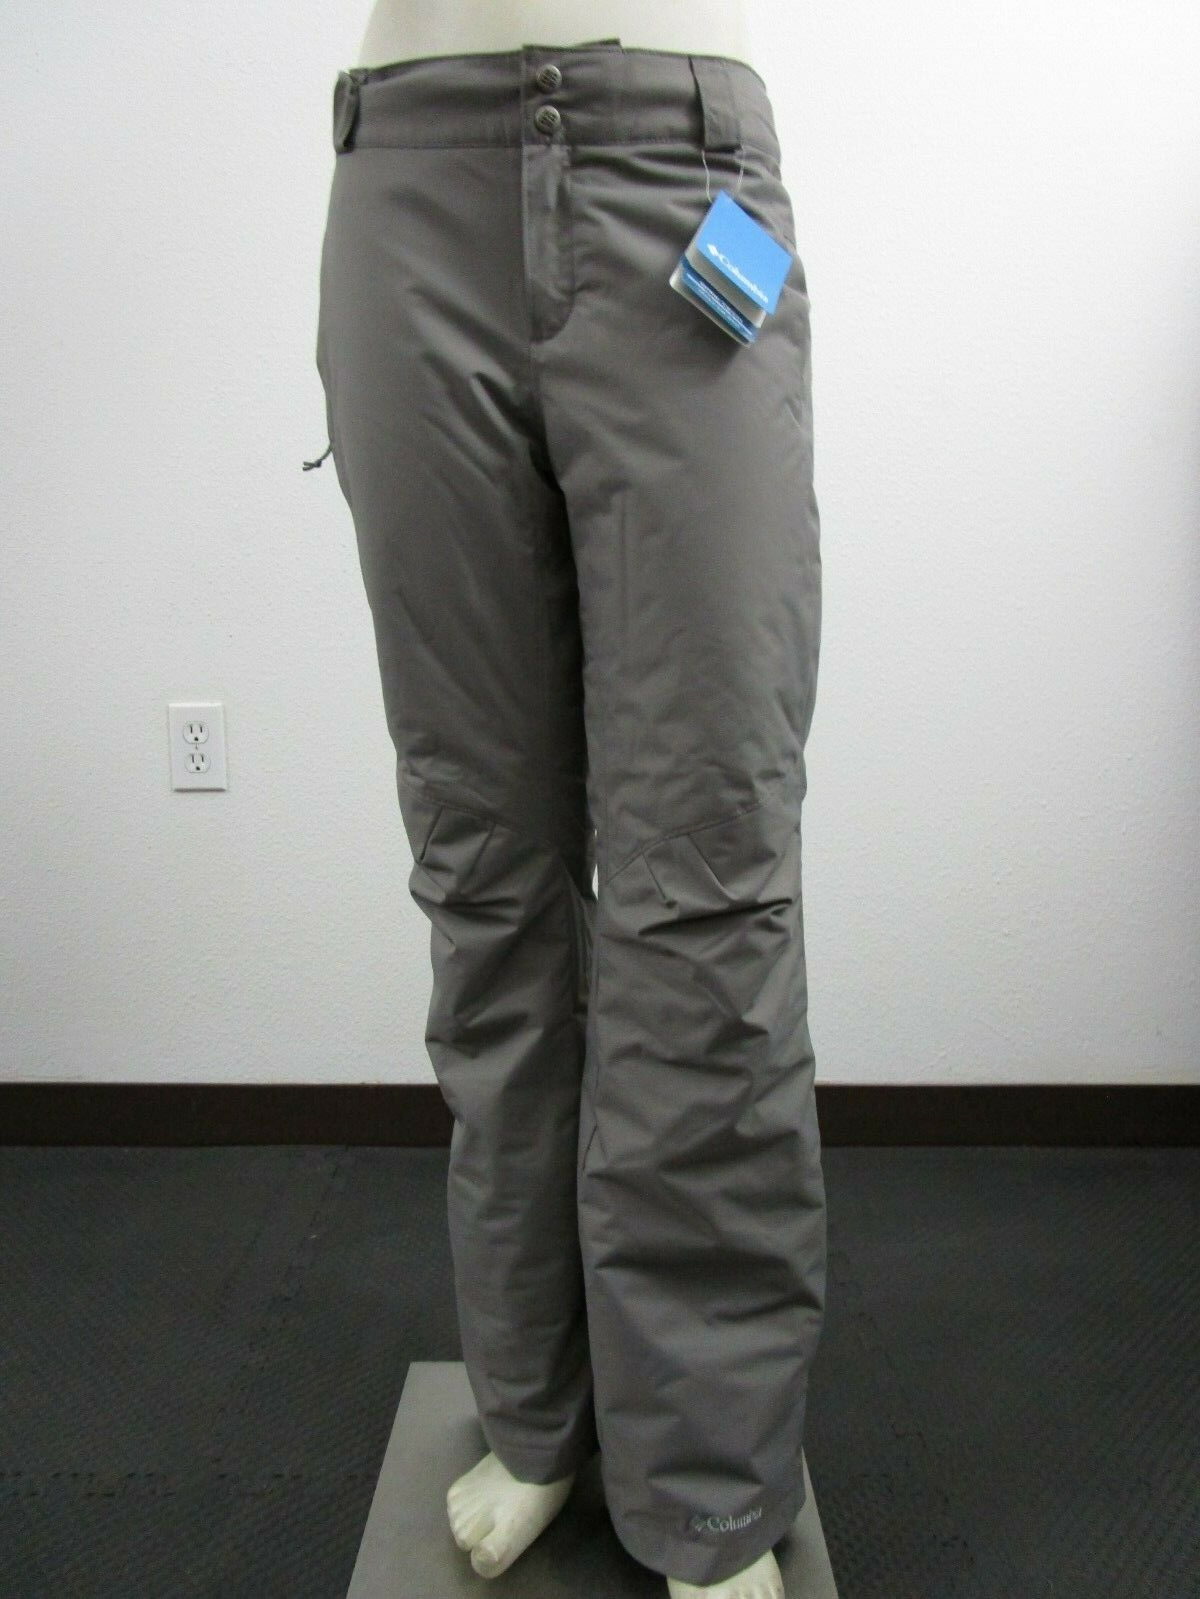 NWT Womens Columbia Arctic Trip Insulated Waterproof Ski Snow Pants - Boulder